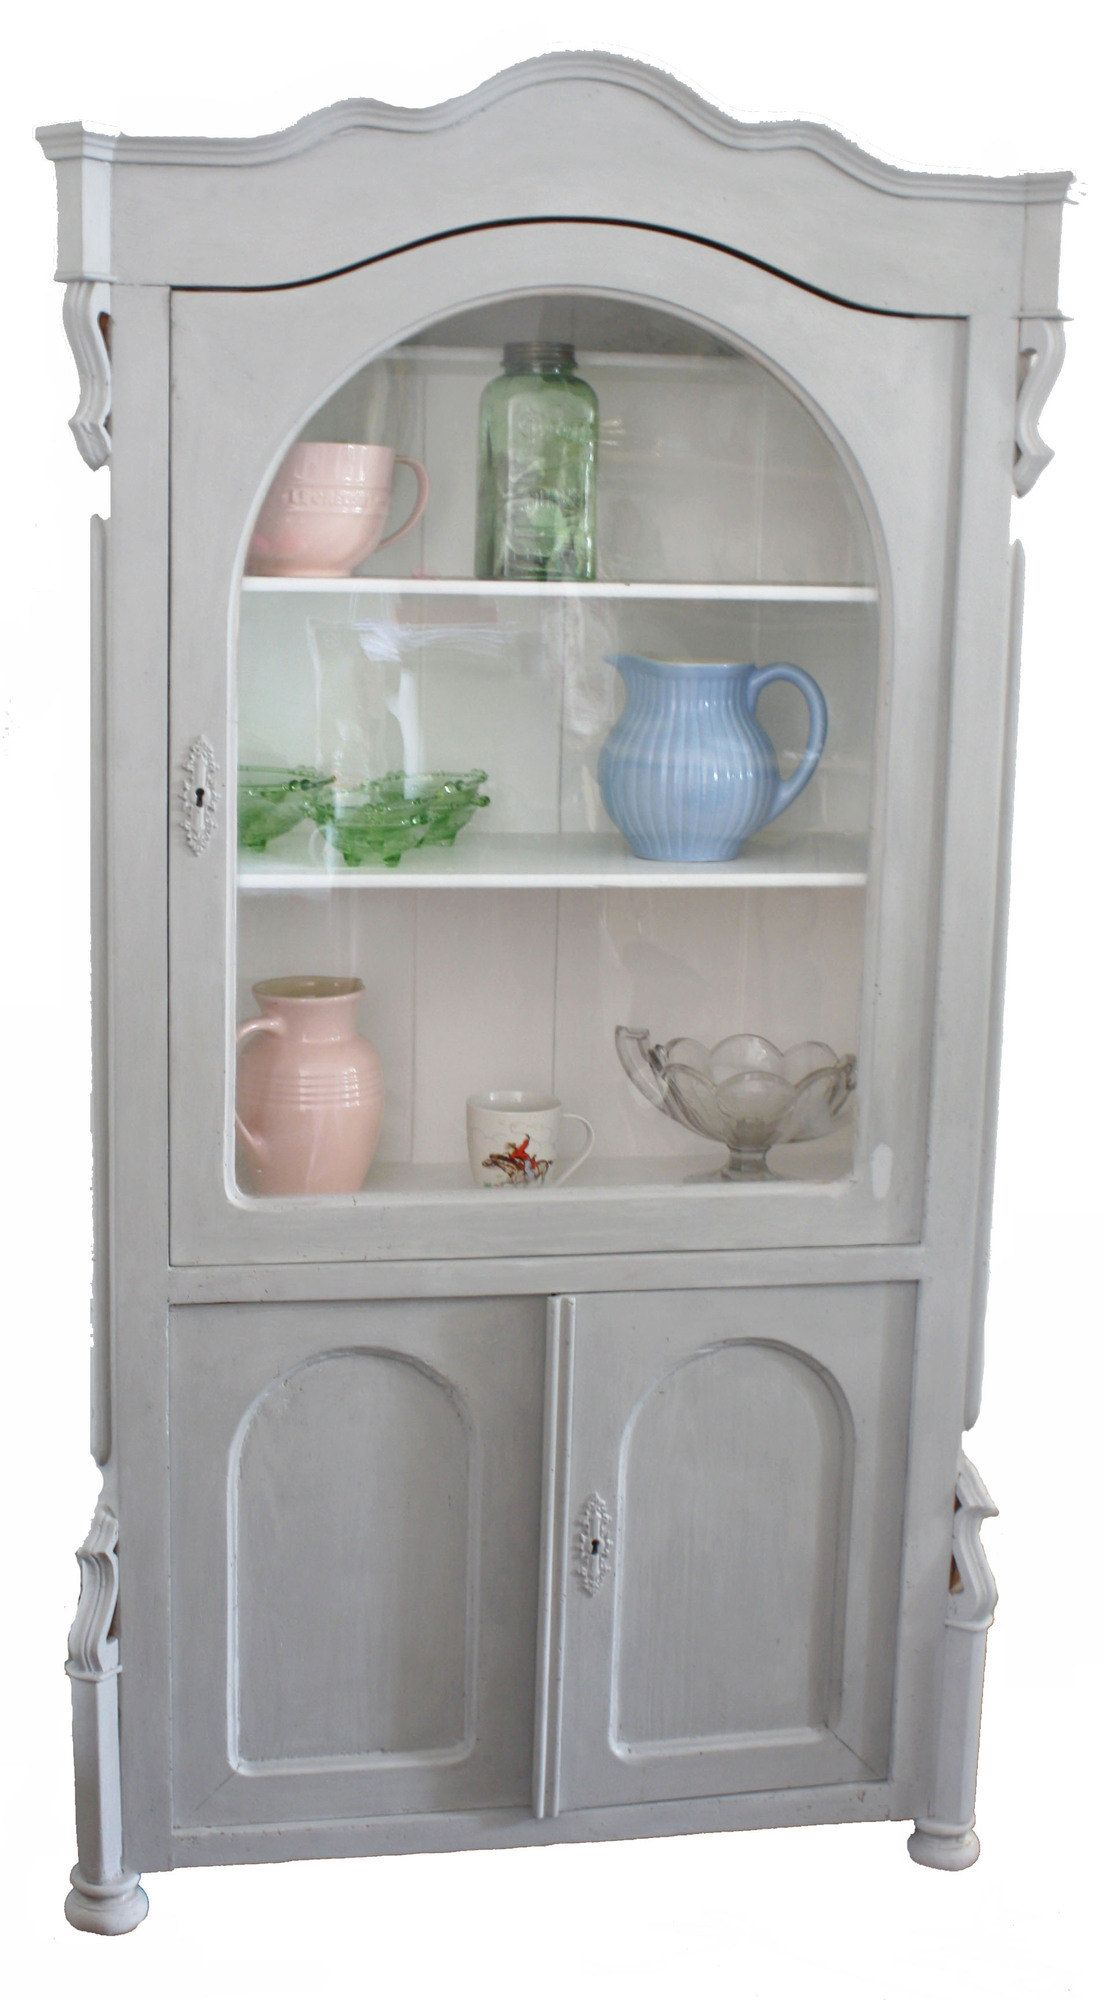 STUNNING ANTIQUE PINE DISPLAY CABINET PAINTED IN ANNIE SLOAN PARIS GREY AND  FINISHED WITH WAX. - STUNNING ANTIQUE PINE DISPLAY CABINET PAINTED IN ANNIE SLOAN PARIS